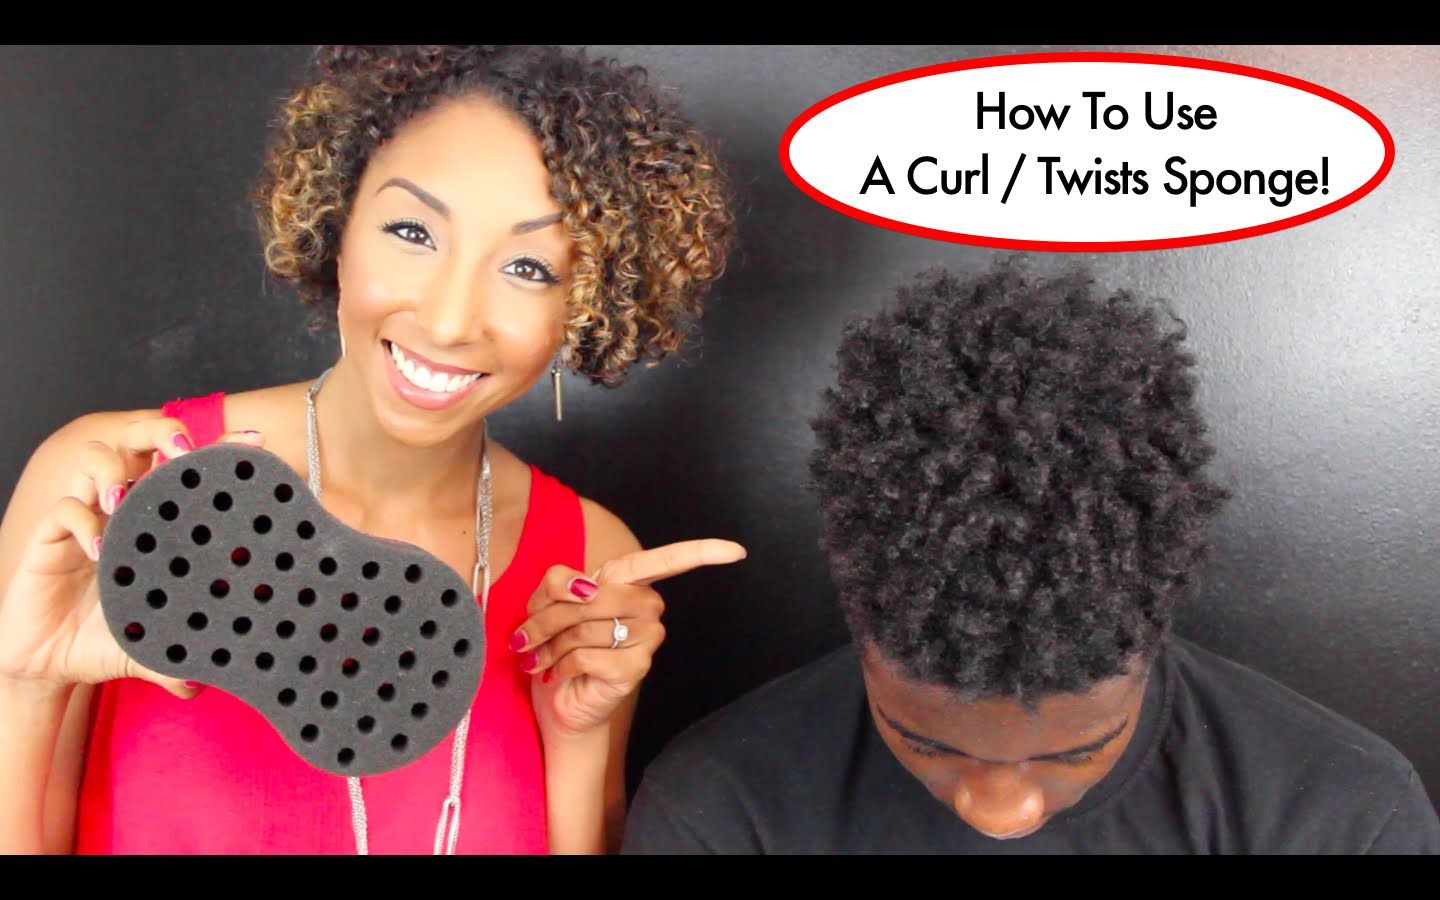 How To Use A Curl Twists Sponge Tutorial For Long Natural Hair Biancareneetoday Hair Sponge Long Natural Hair Natural Hair Styles